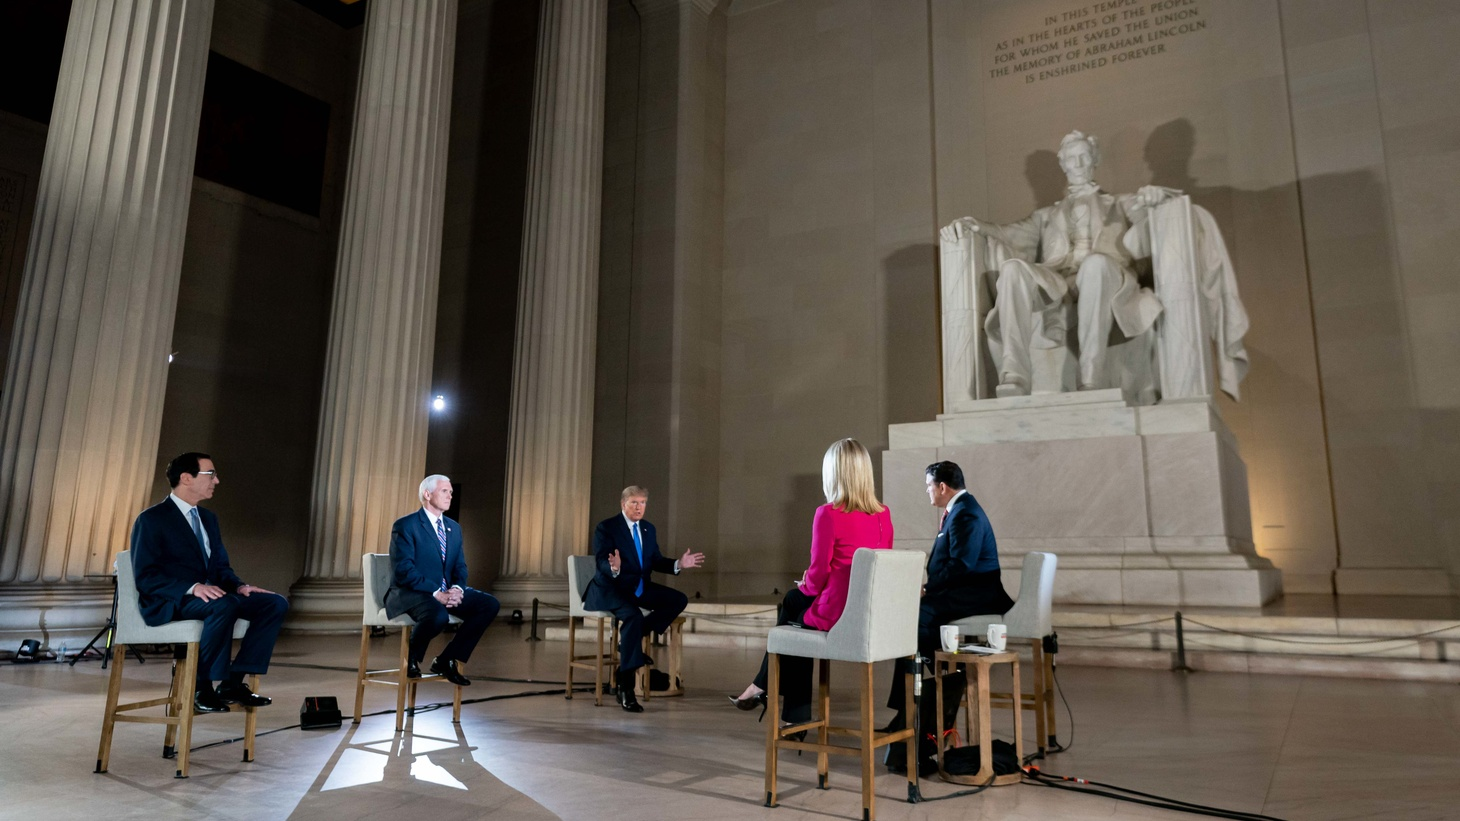 President Donald Trump, joined by Vice President Mike Pence and Treasury Secretary Steven Mnuchin participated in a Fox News virtual town hall from the Lincoln Memorial on May 3, 2020. Trump and Fox News had been fast friends, but lately the President has attacked the network.